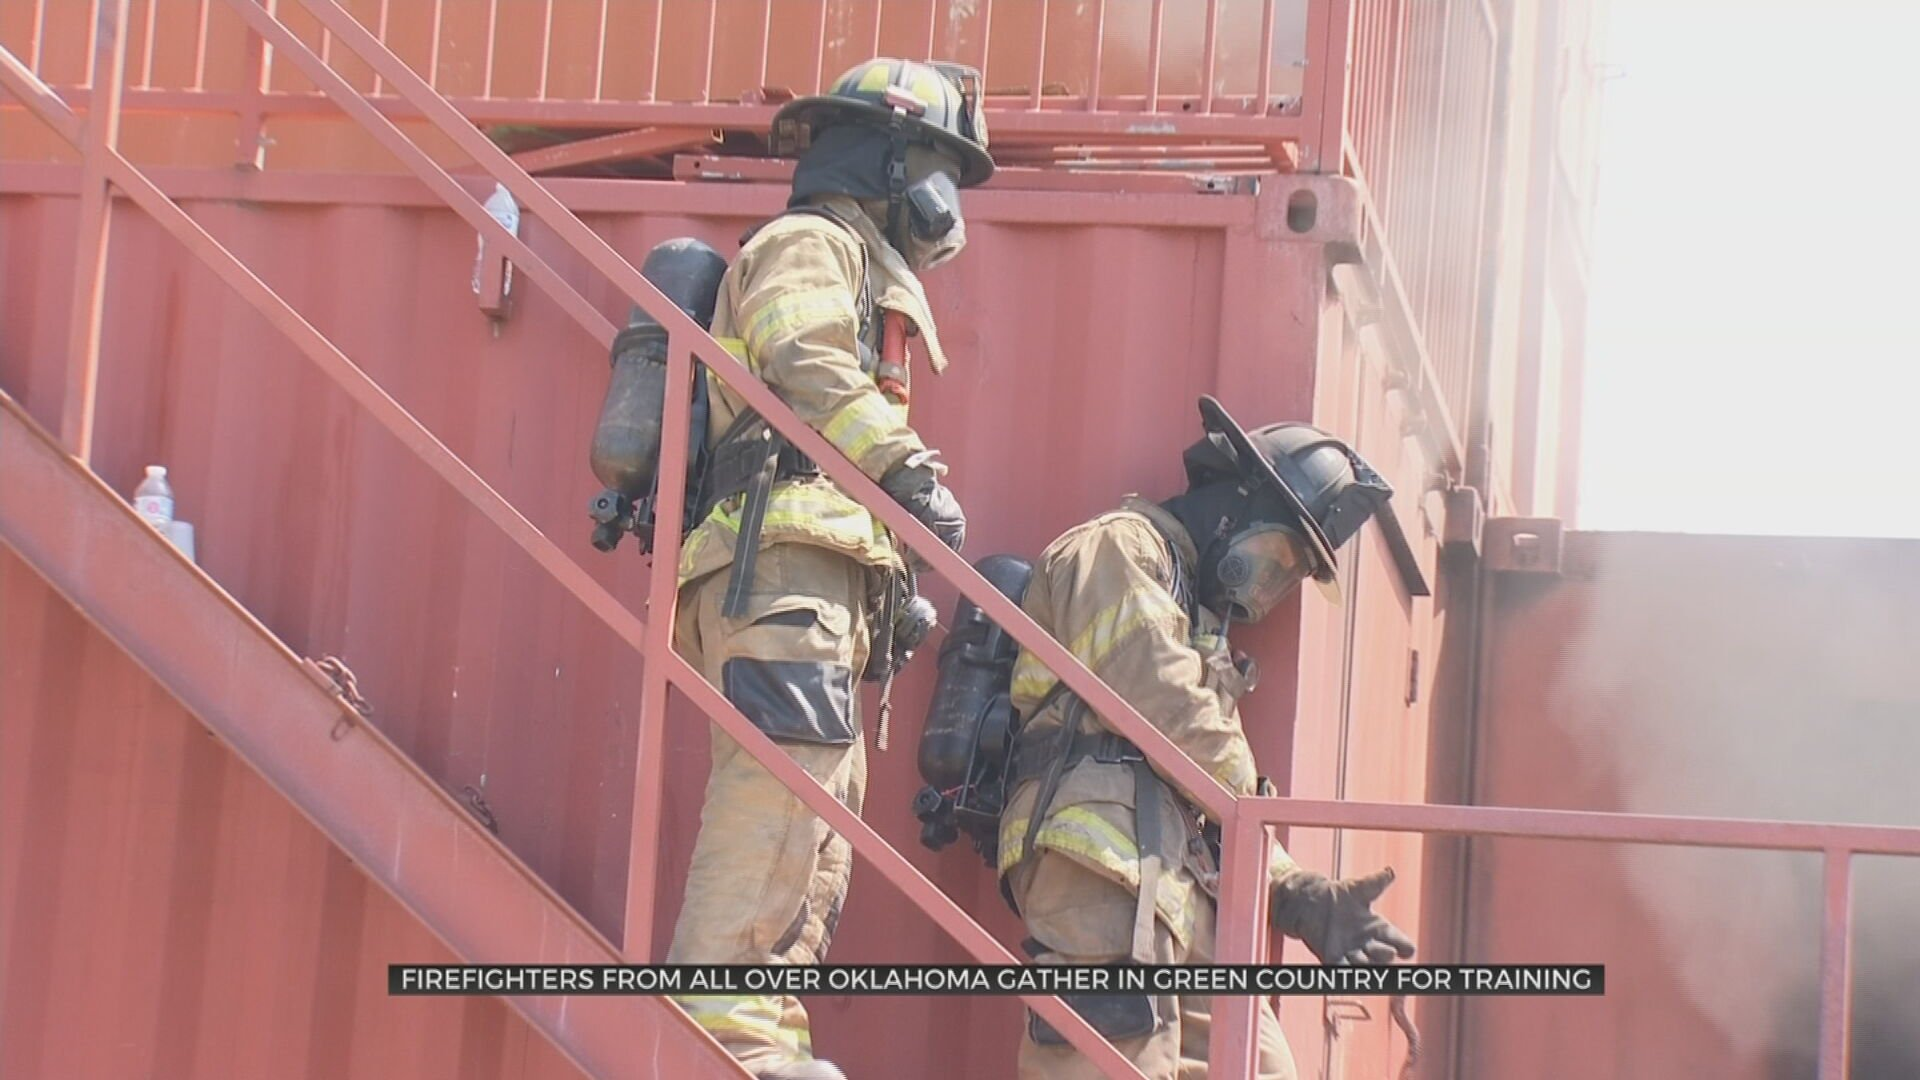 Firefighters From Across Oklahoma Gather In Green Country For Training